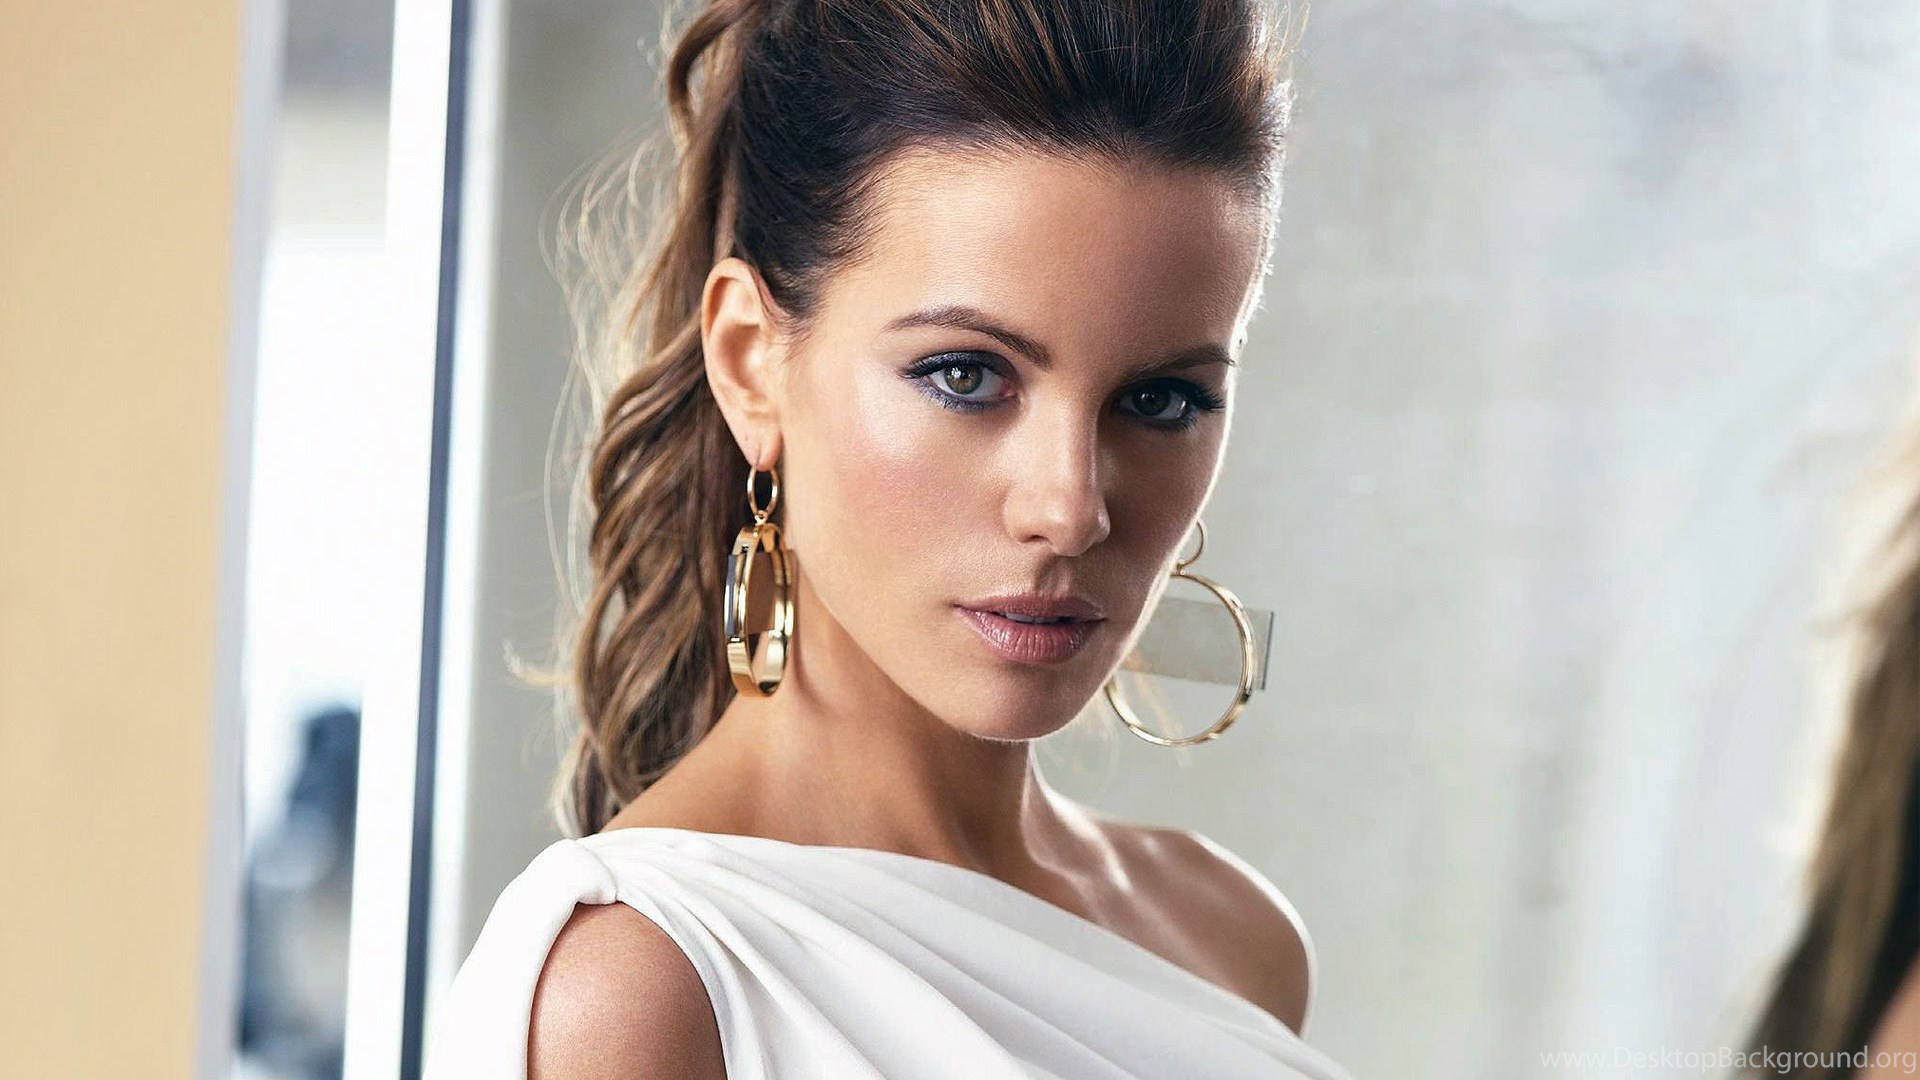 kate beckinsale hd wallpapers hd wallpaper backgrounds of your